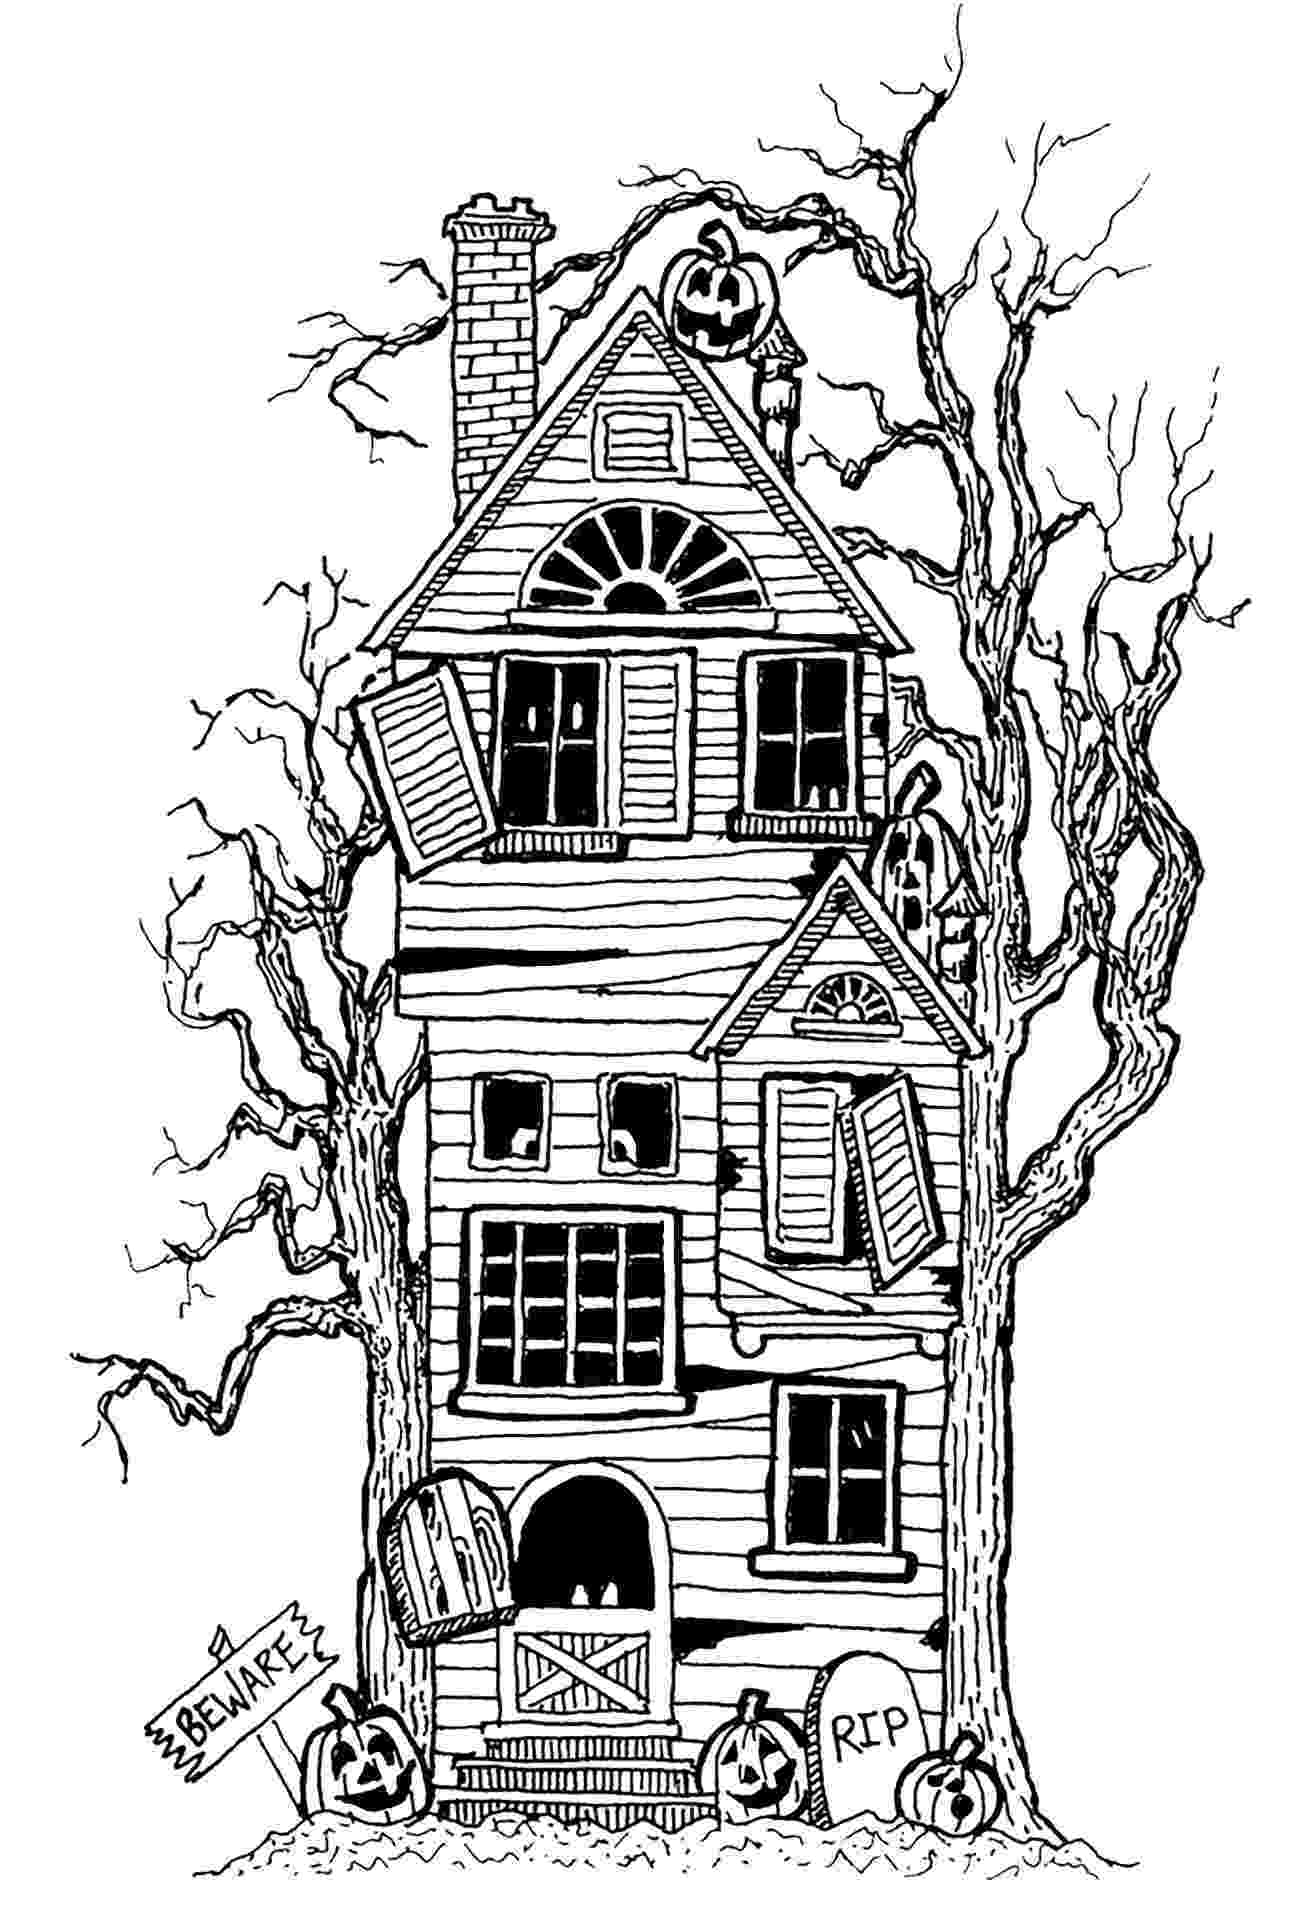 coloring pages for adults halloween best halloween coloring books for adults cleverpedia pages for halloween adults coloring